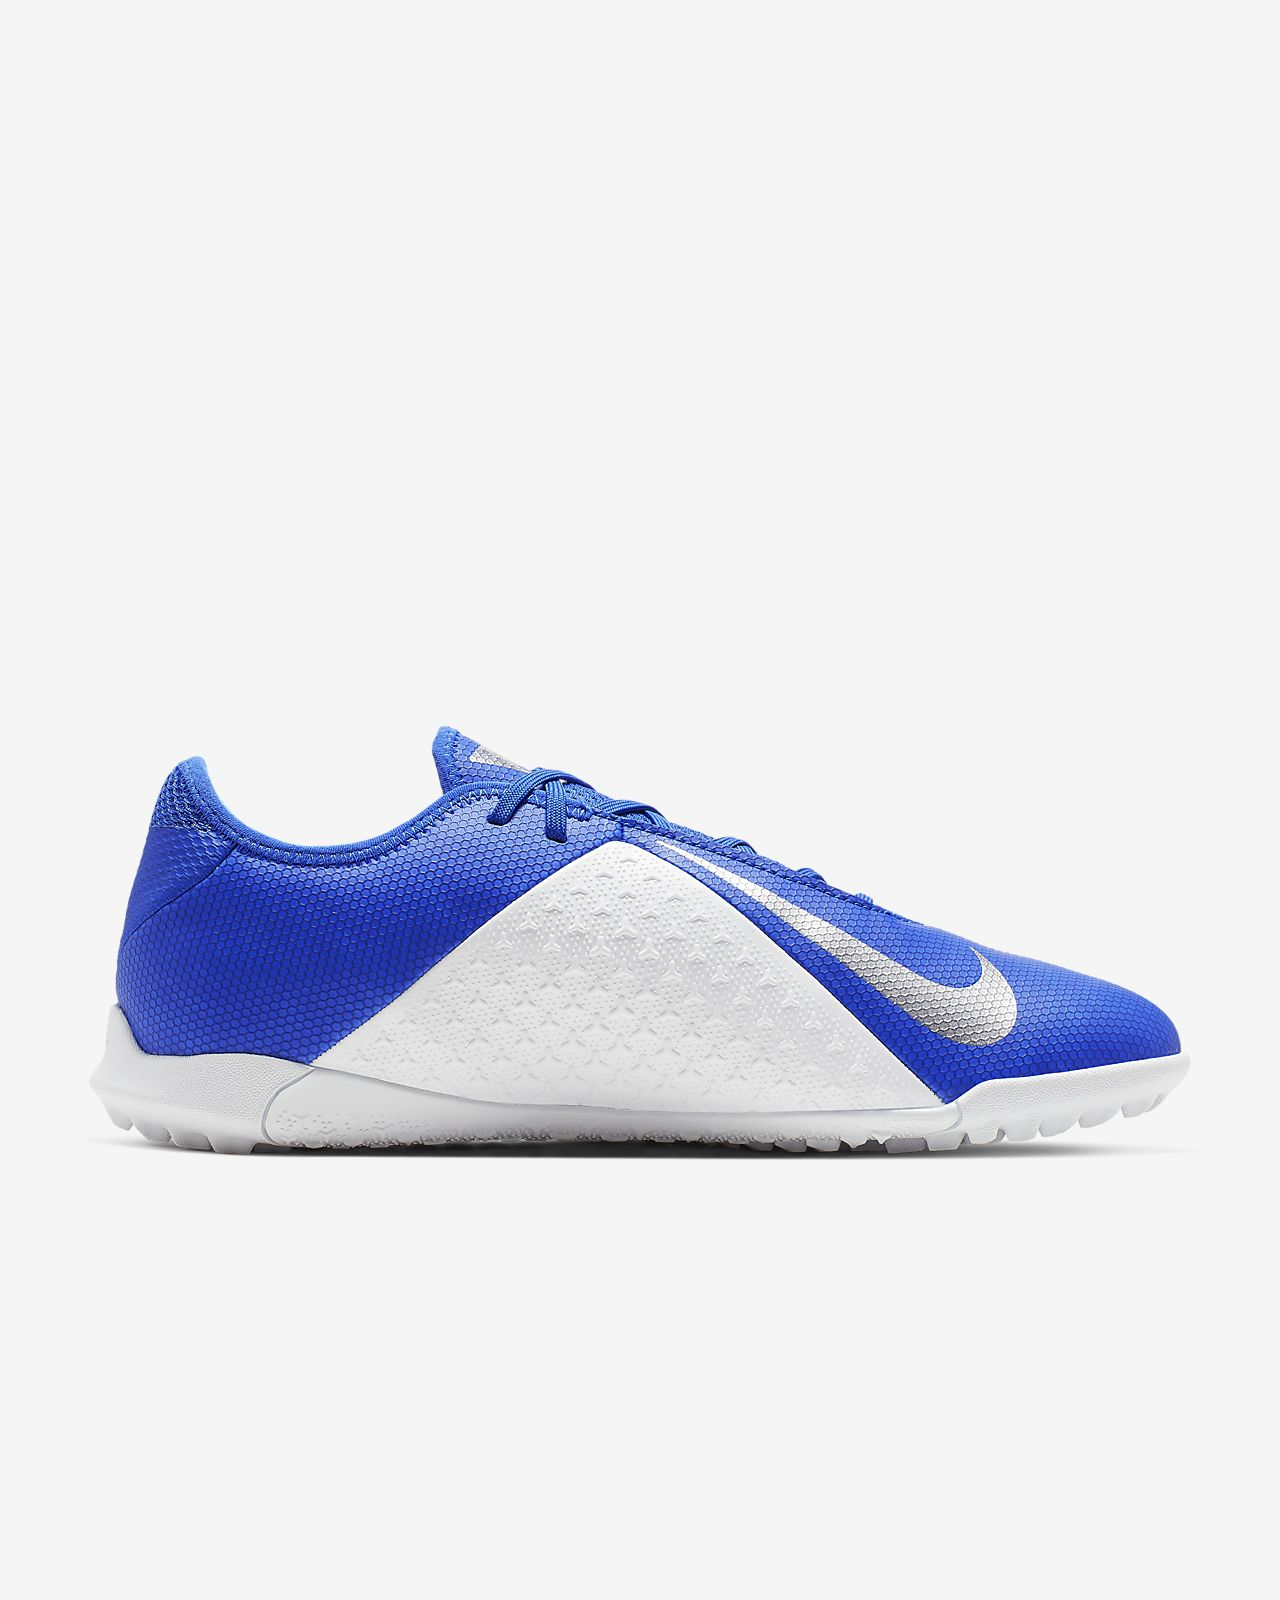 outlet store 7cde4 ee15e ... Nike Phantom Vision Academy Artificial-Turf Football Boot